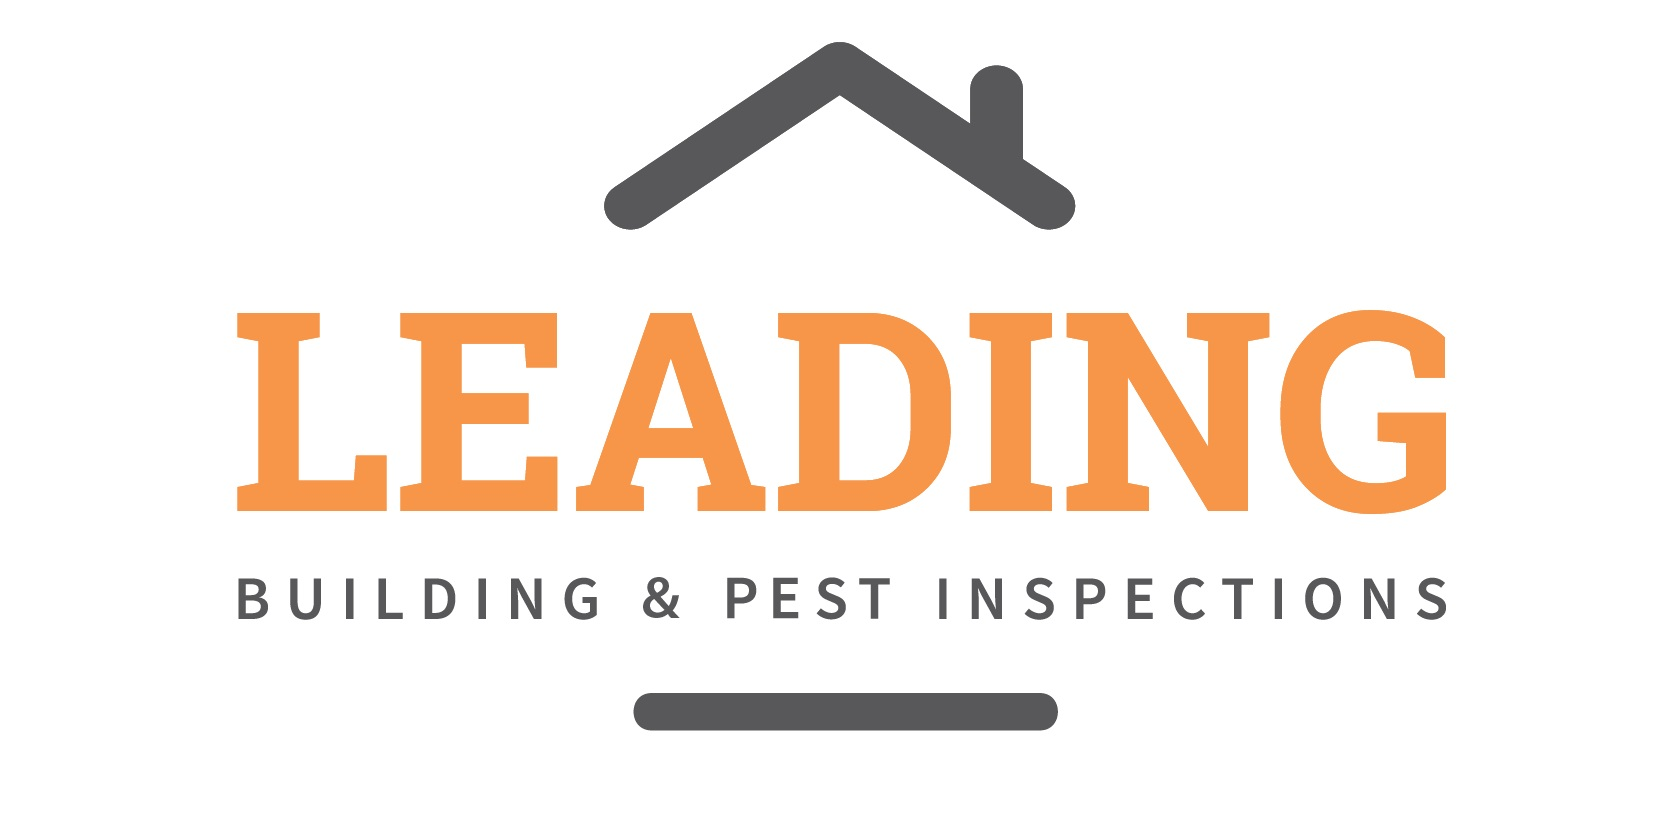 leading-building-pest-inspections-proven-system-years-in-the-making-1